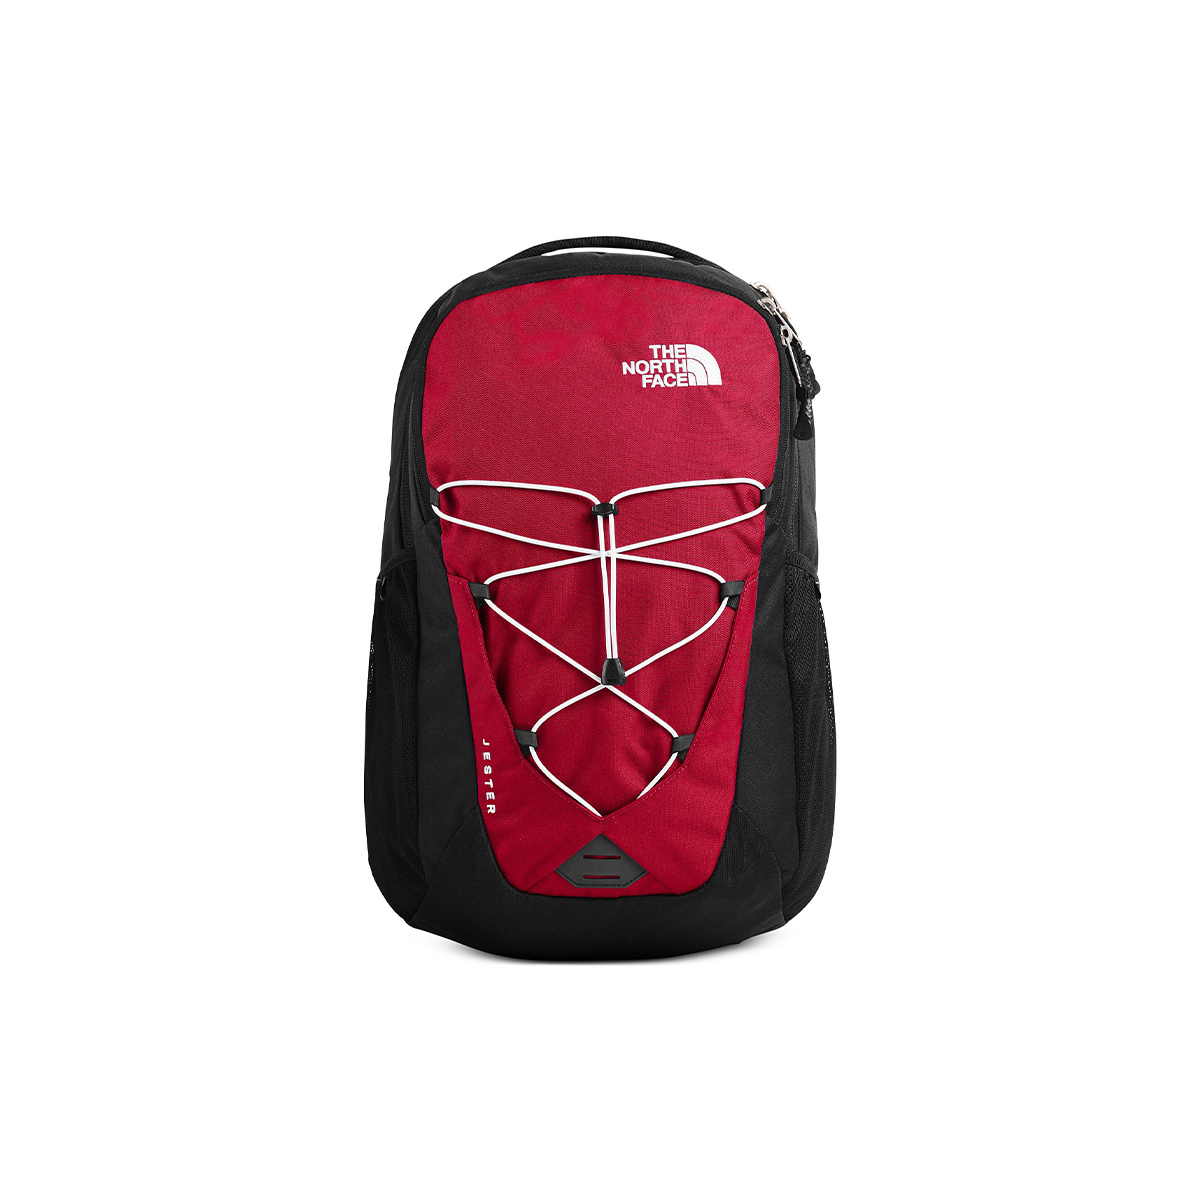 2c54ccbc0 The North Face Jester Backpack